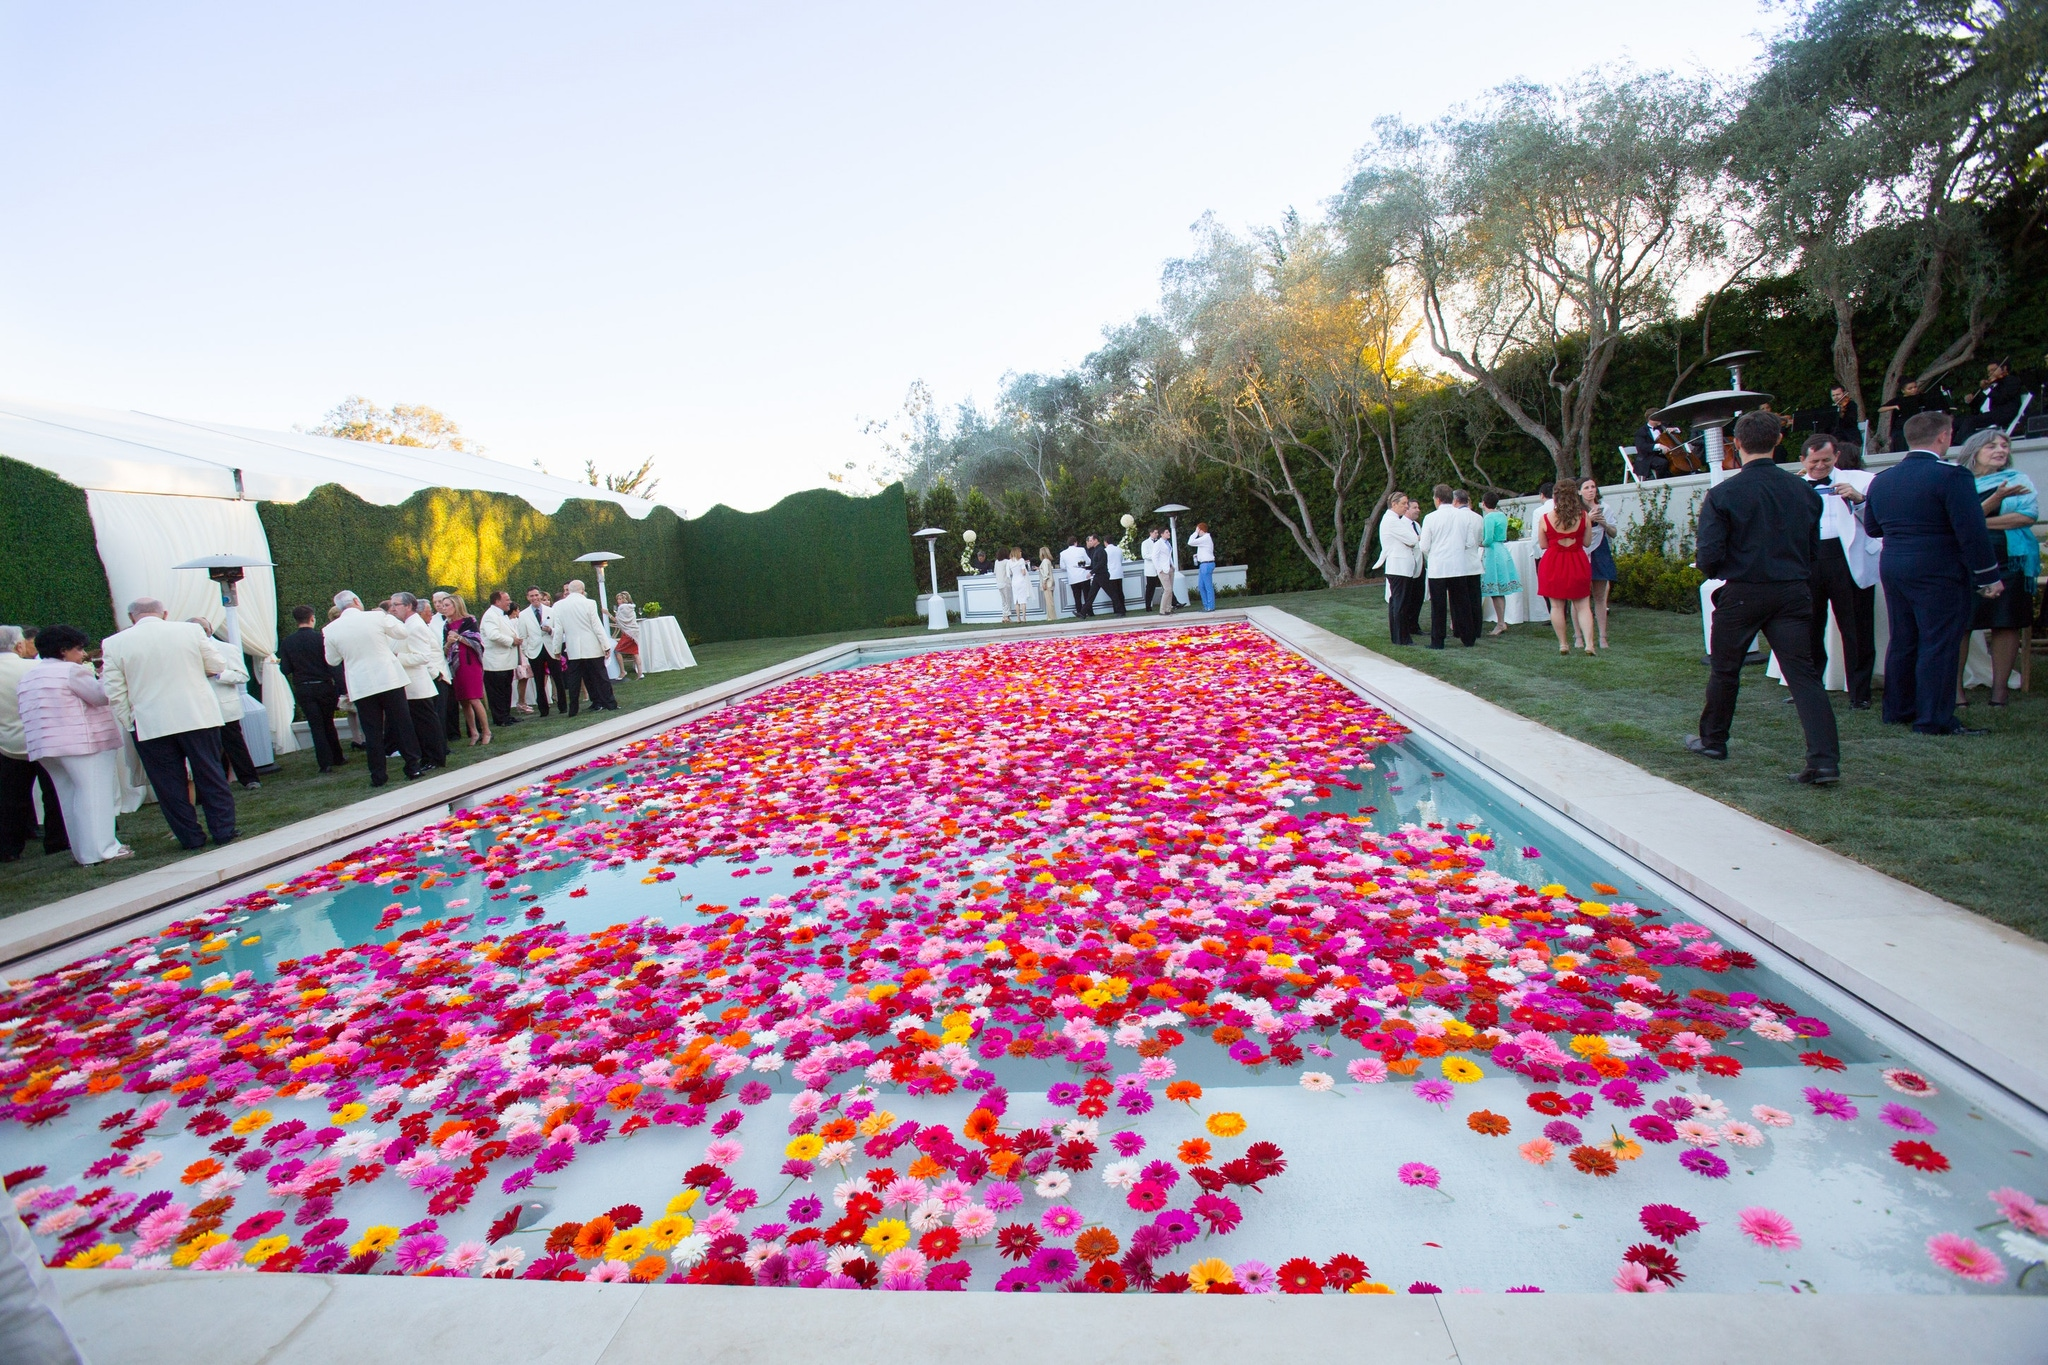 Pink flower petals in a pool